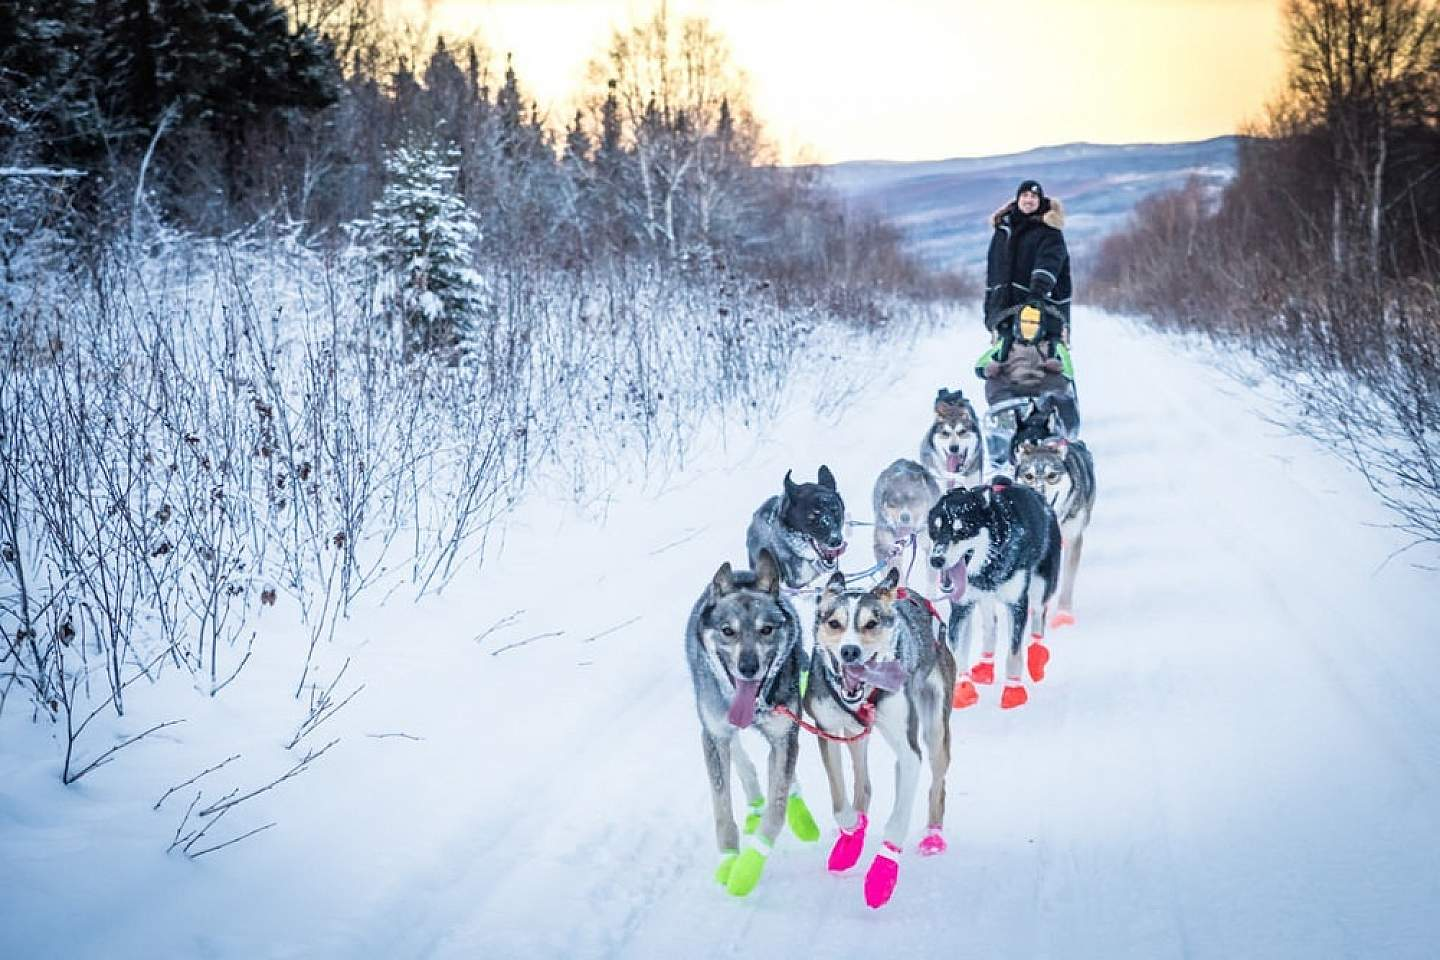 A team of sled dogs races down a winter trail